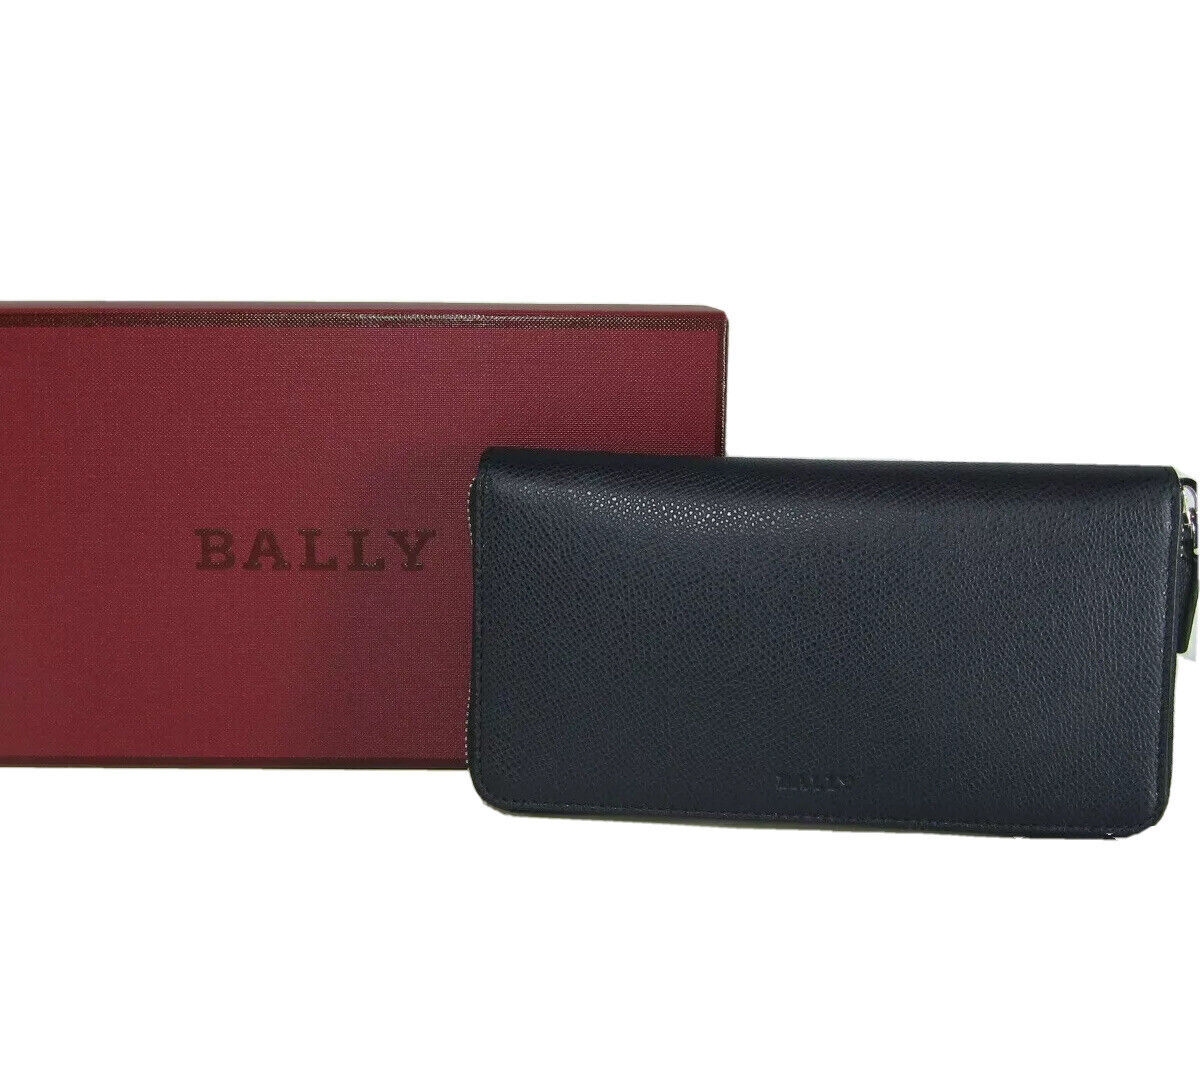 M-264967 New Bally Navy Bovine Embossed Leather Zip Around Leather Wallet